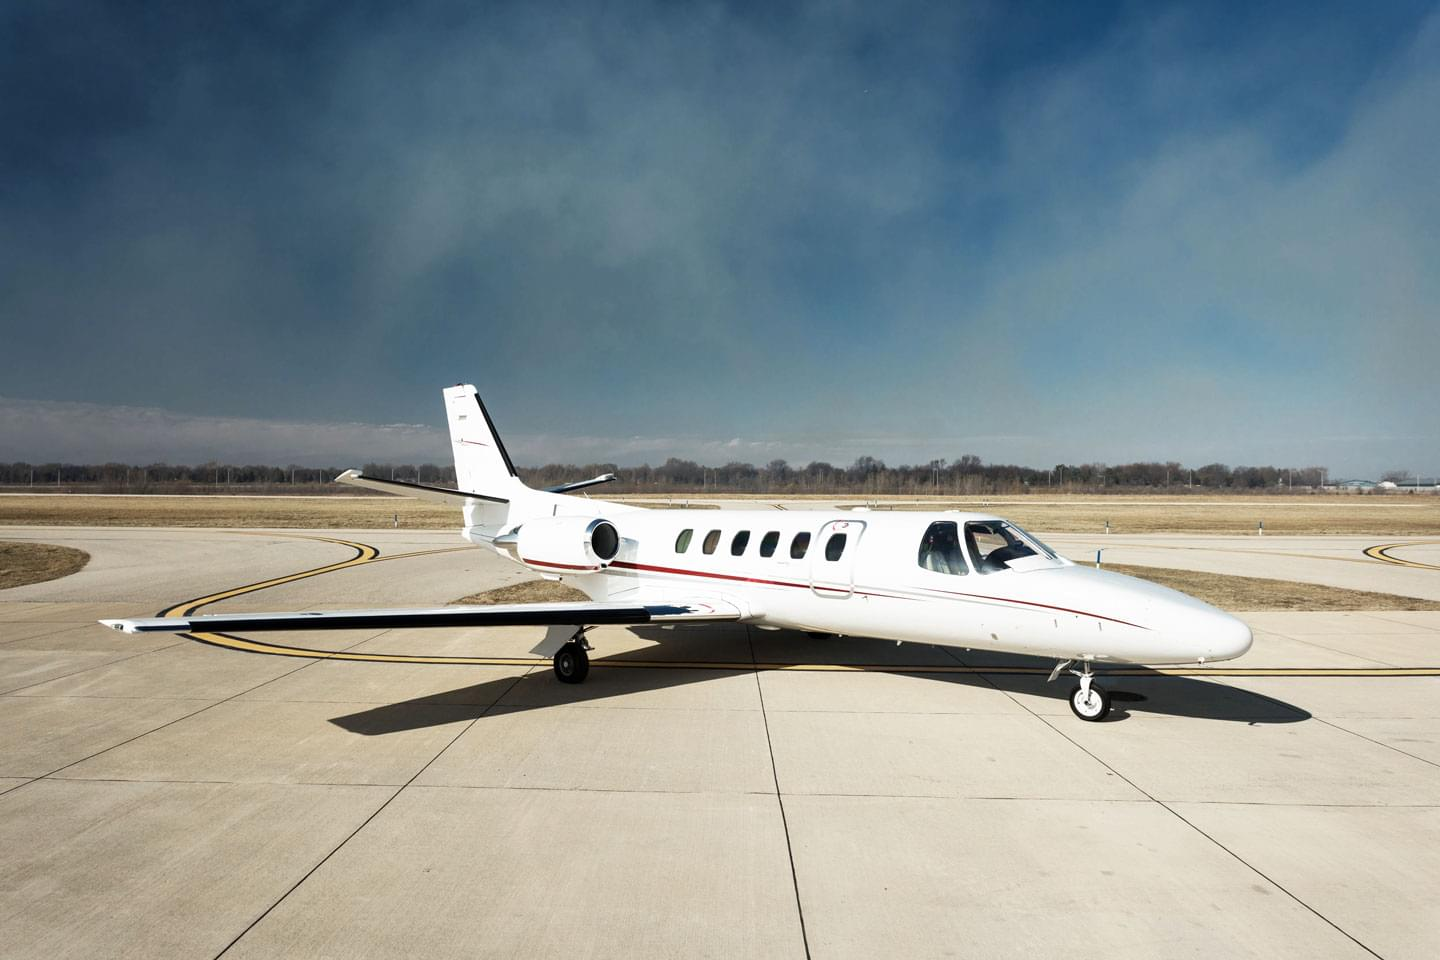 Louer un Cessna Citation II Light Jet-7-468.1425485961123-1109